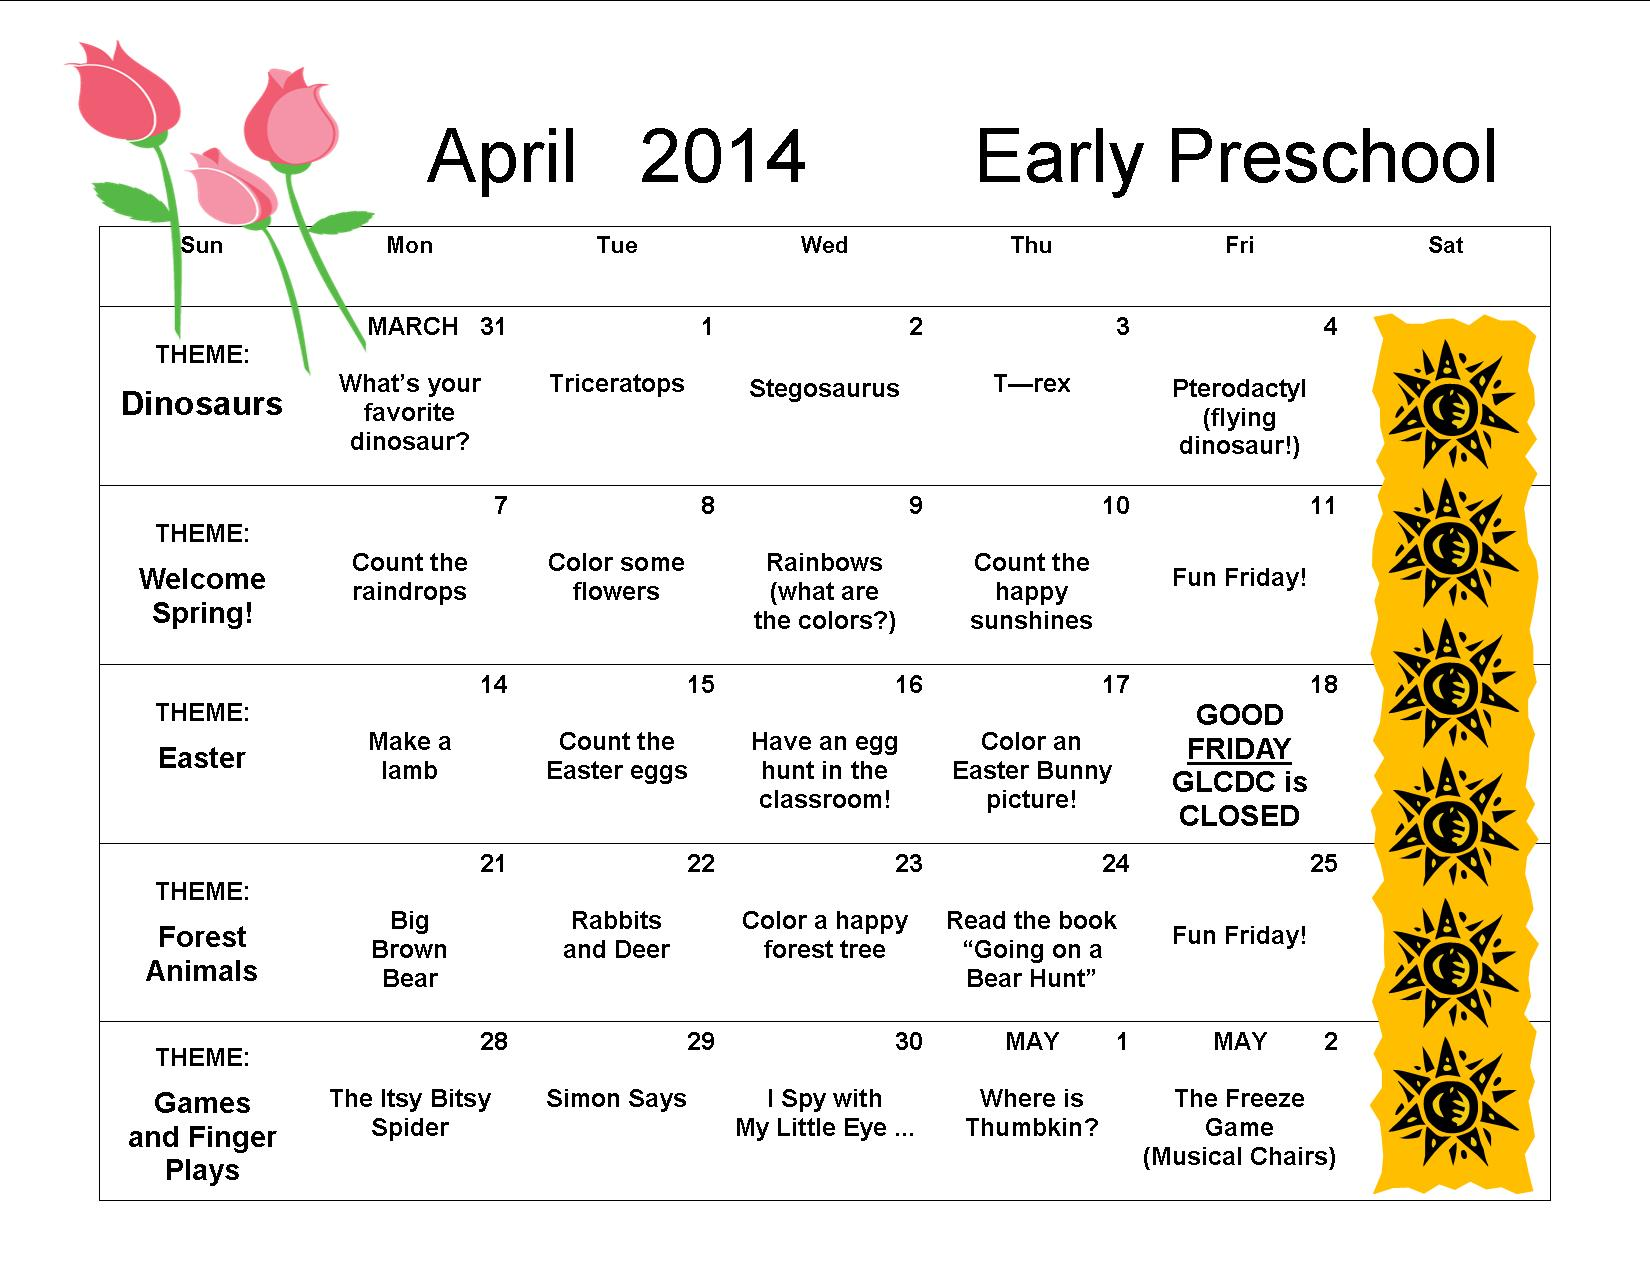 April Calendar S Kindergarten : April early preschool great lakes child development